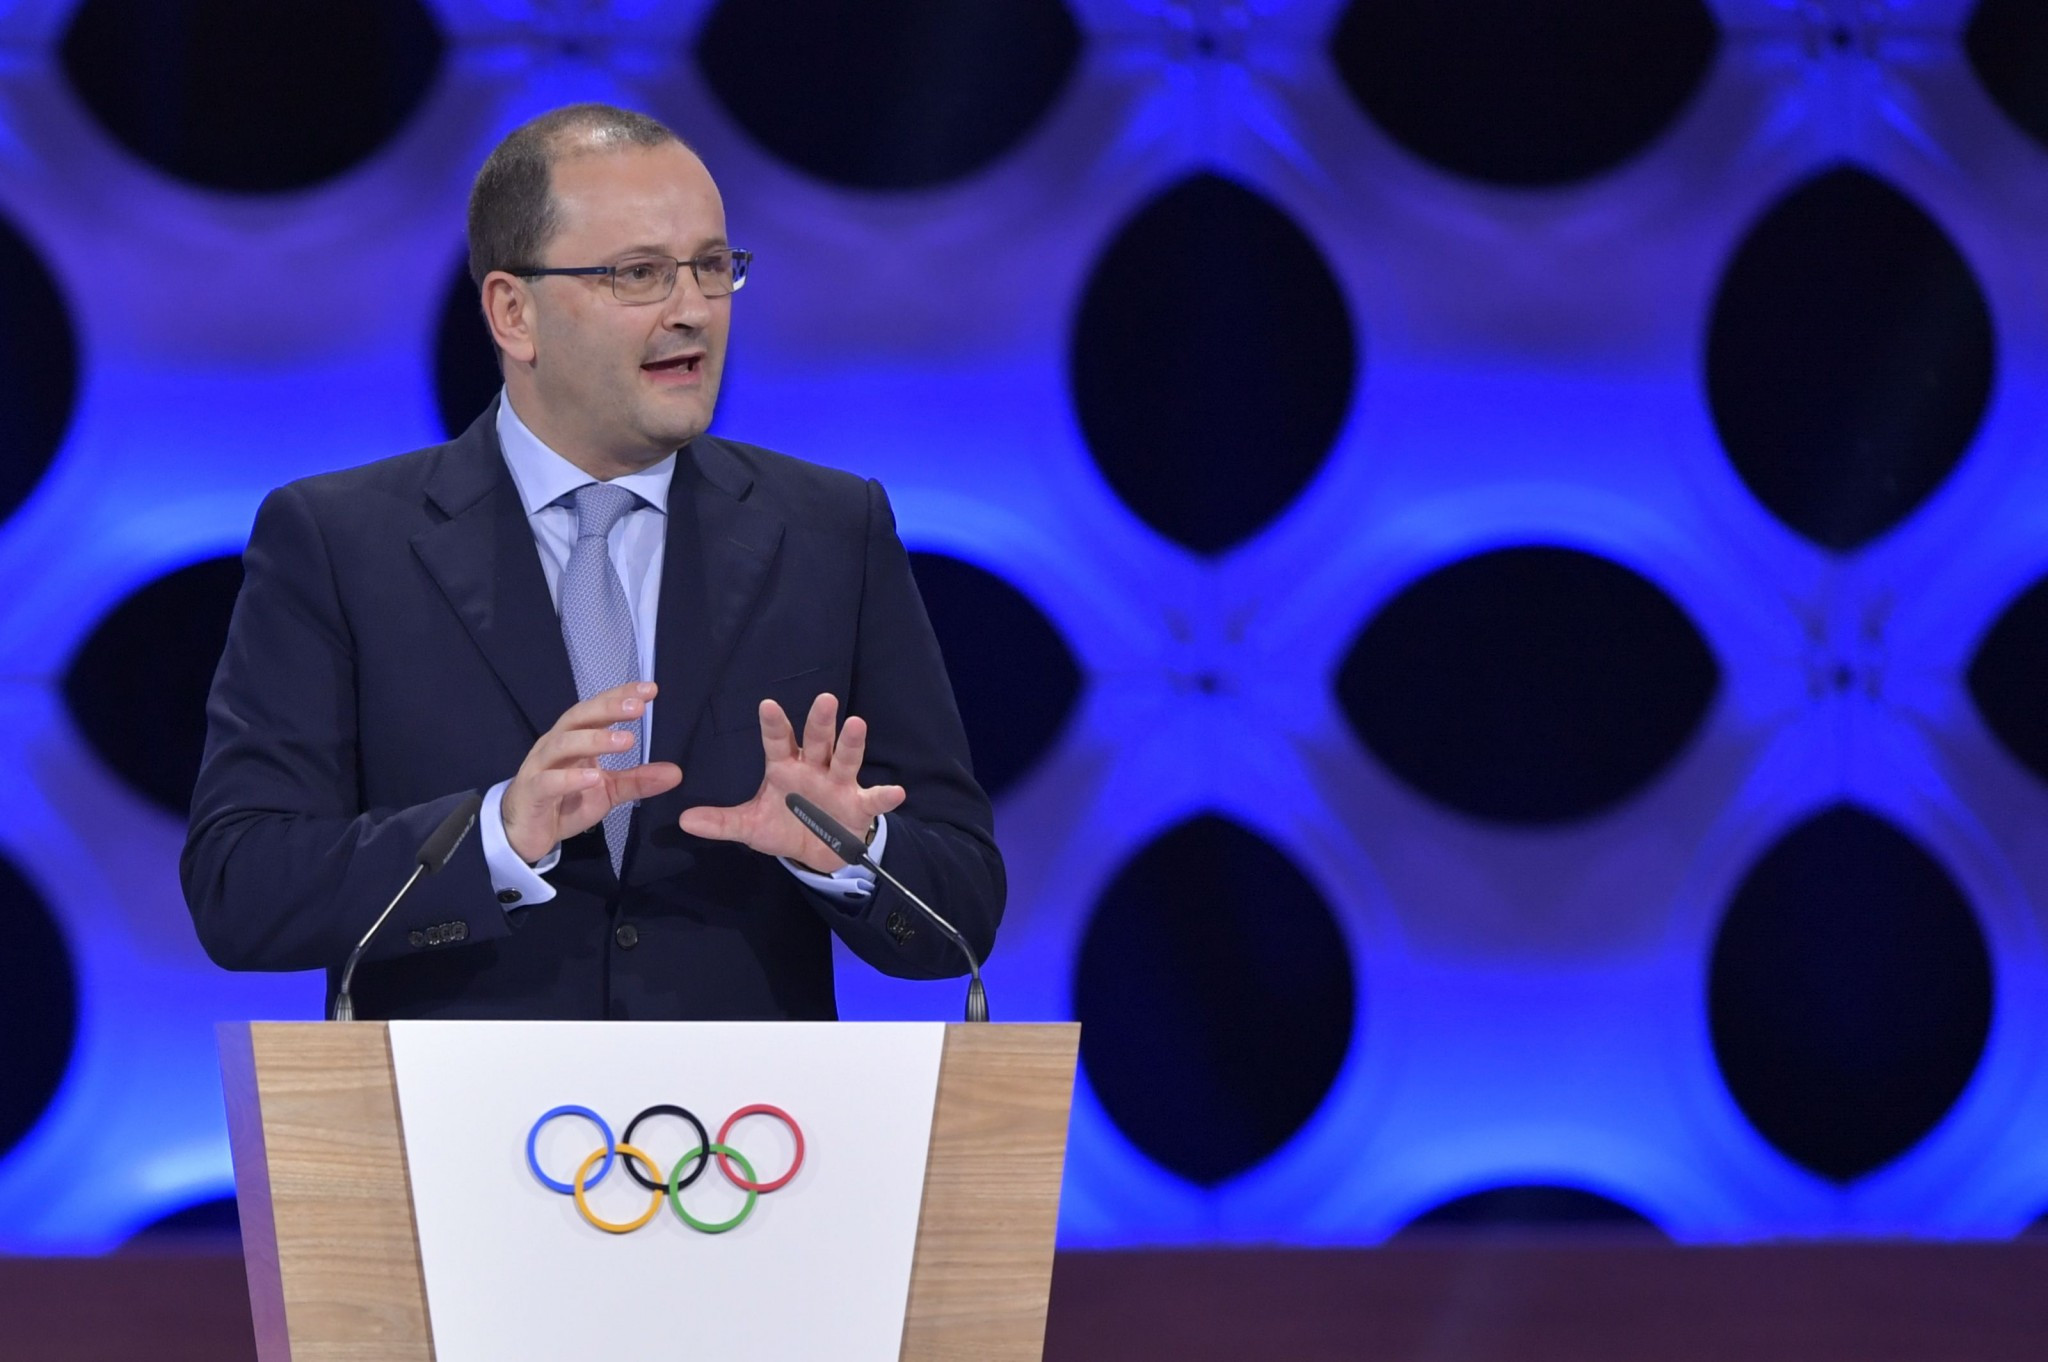 Baumann claims changes to Winter Youth Olympic Games will not have negative effect on Lausanne 2020